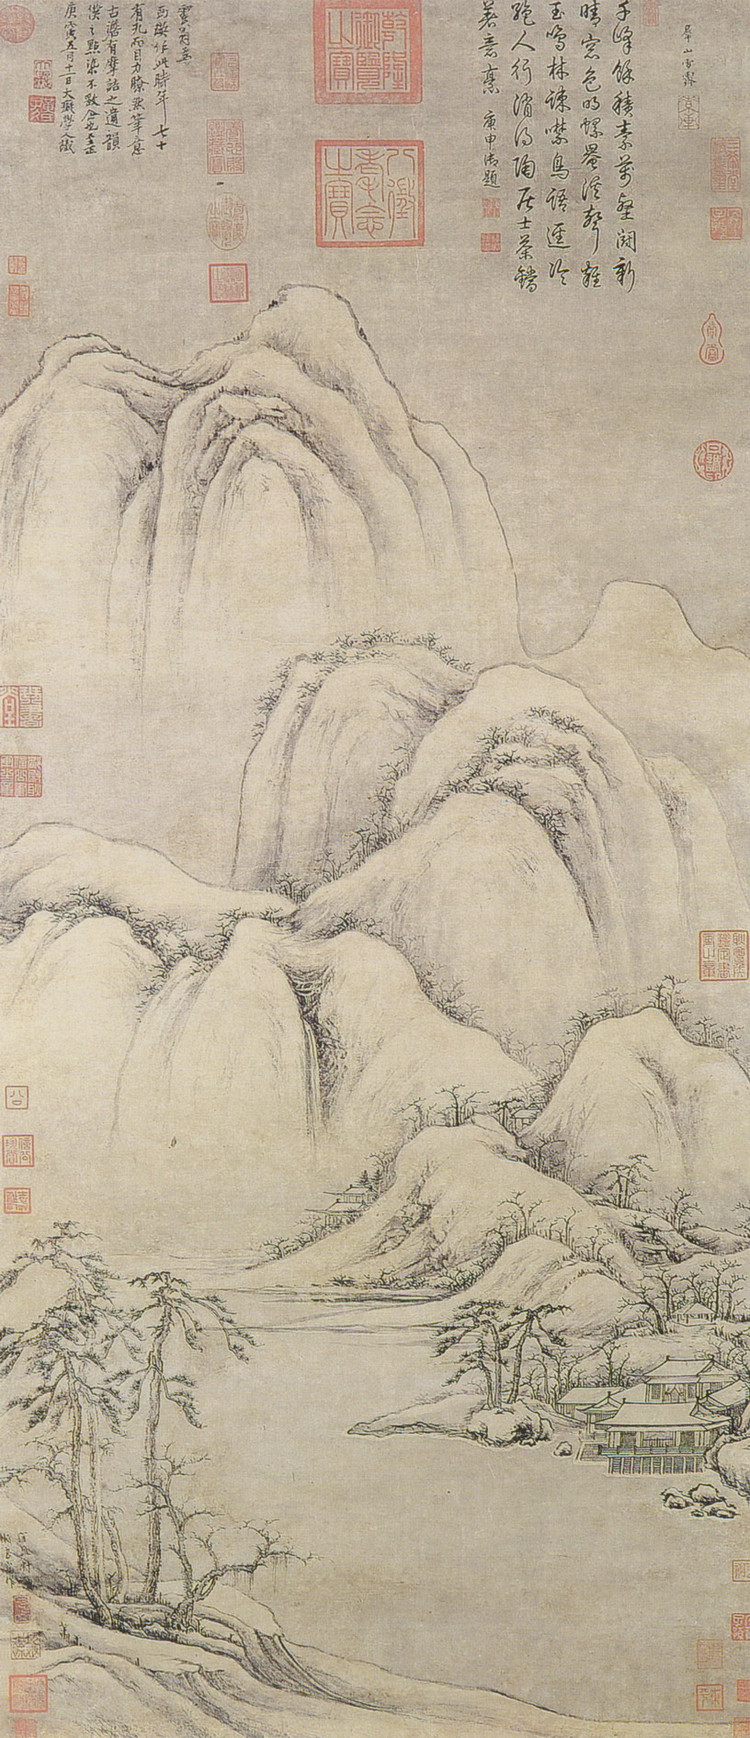 Cao Zhibai's painting - Clearing Snow on Mountain Peaks